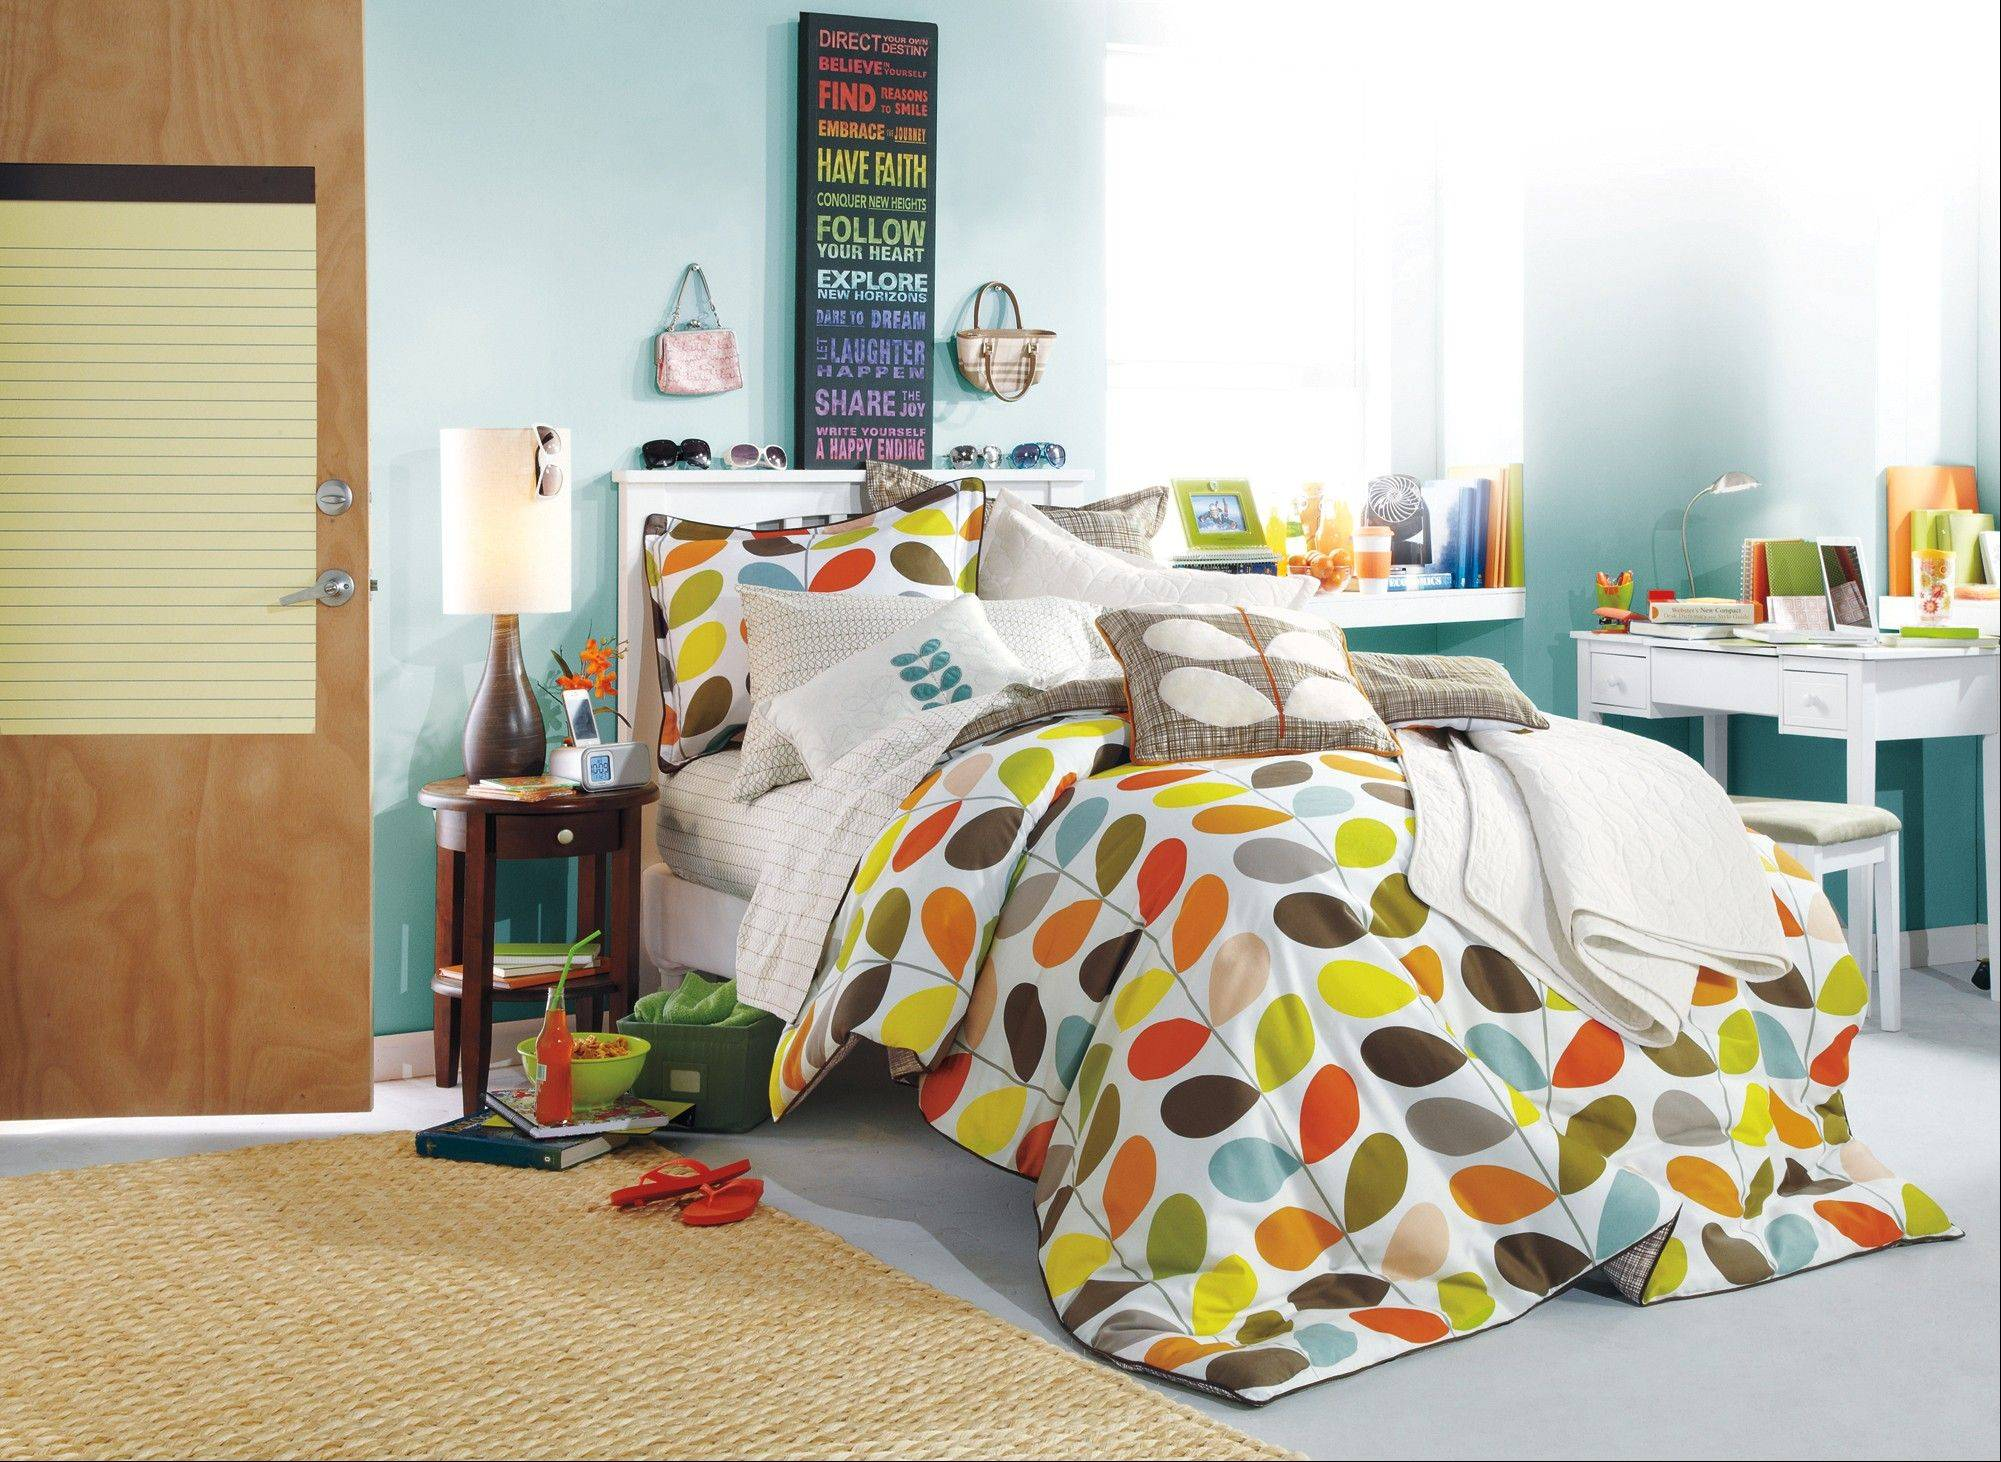 A comforter is usually one of the first purchases for the dorm room.